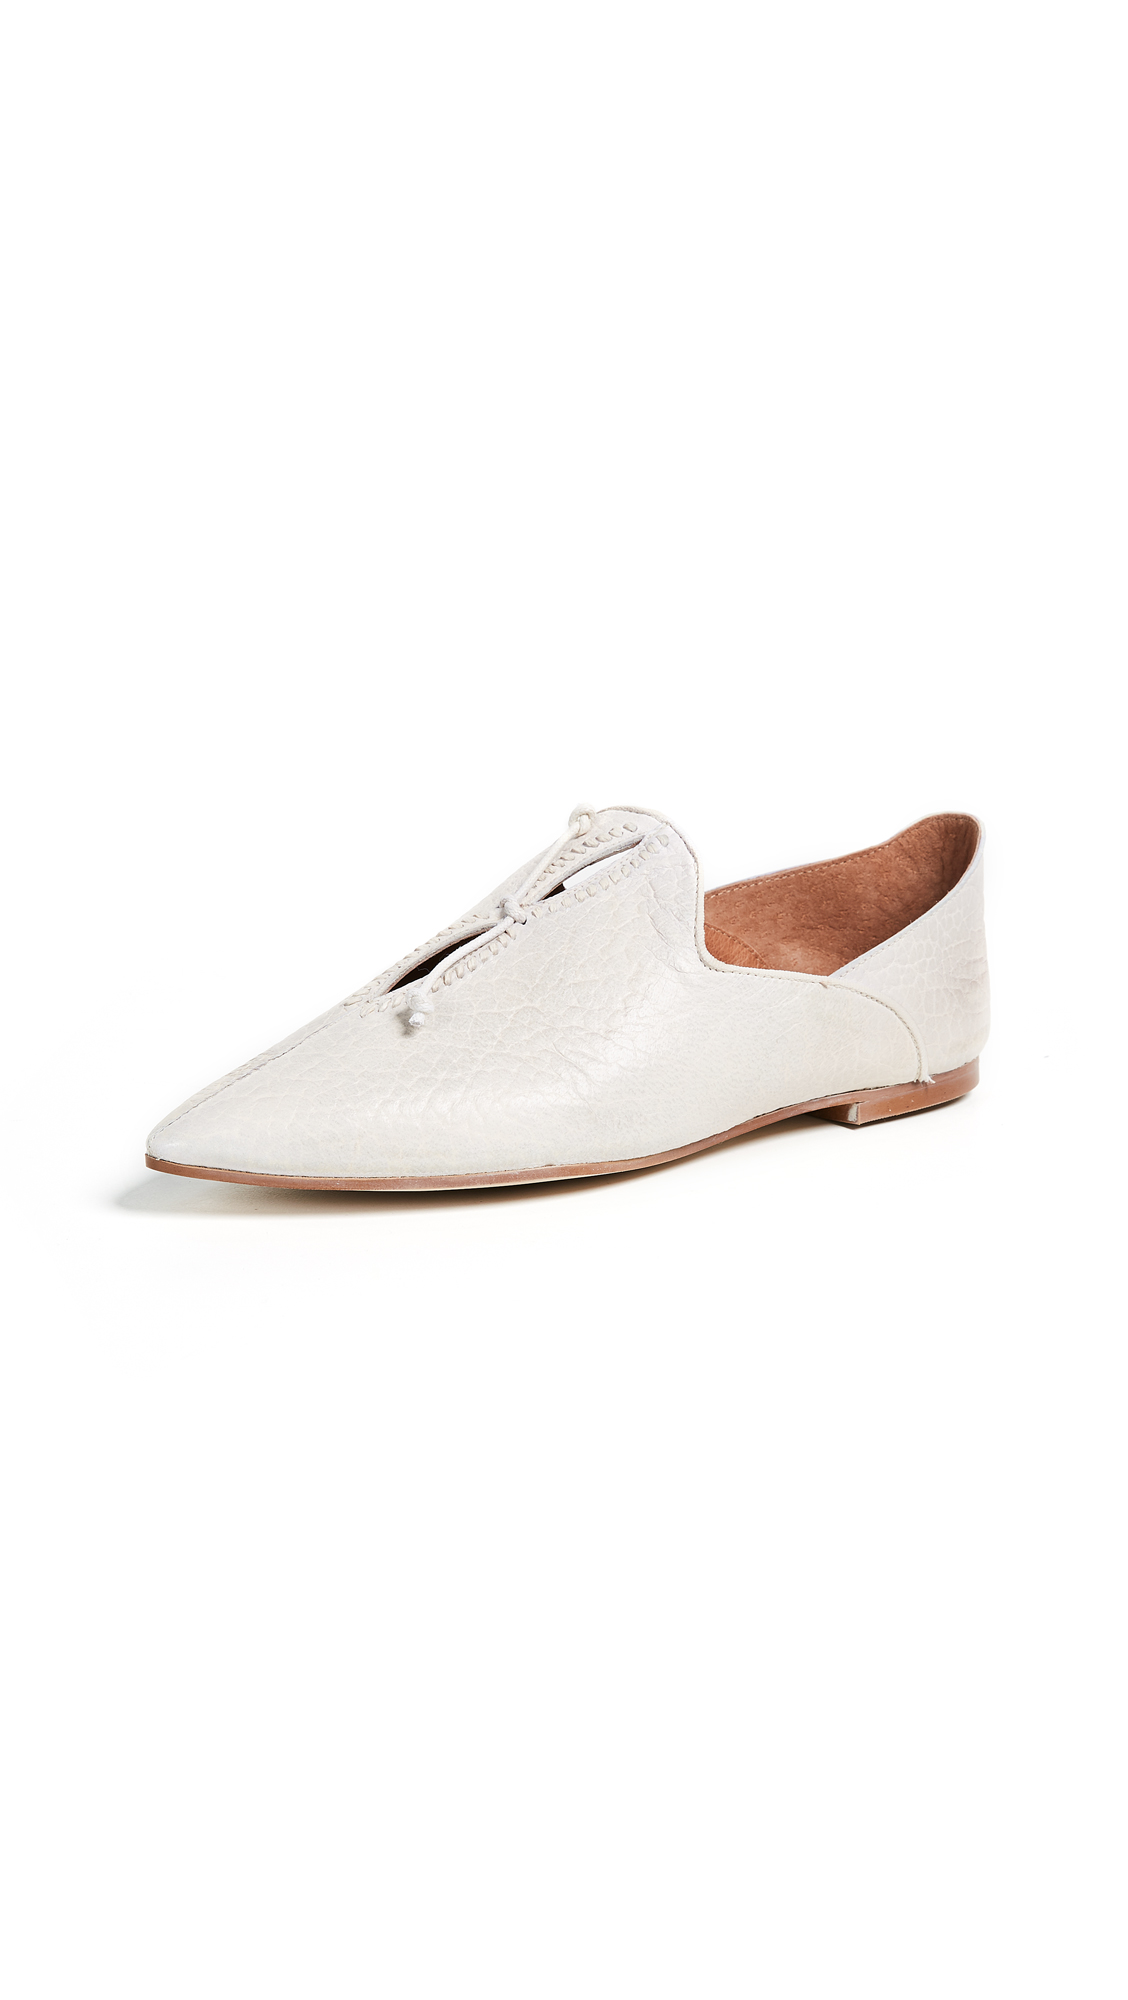 Free People St. Lucia Flats